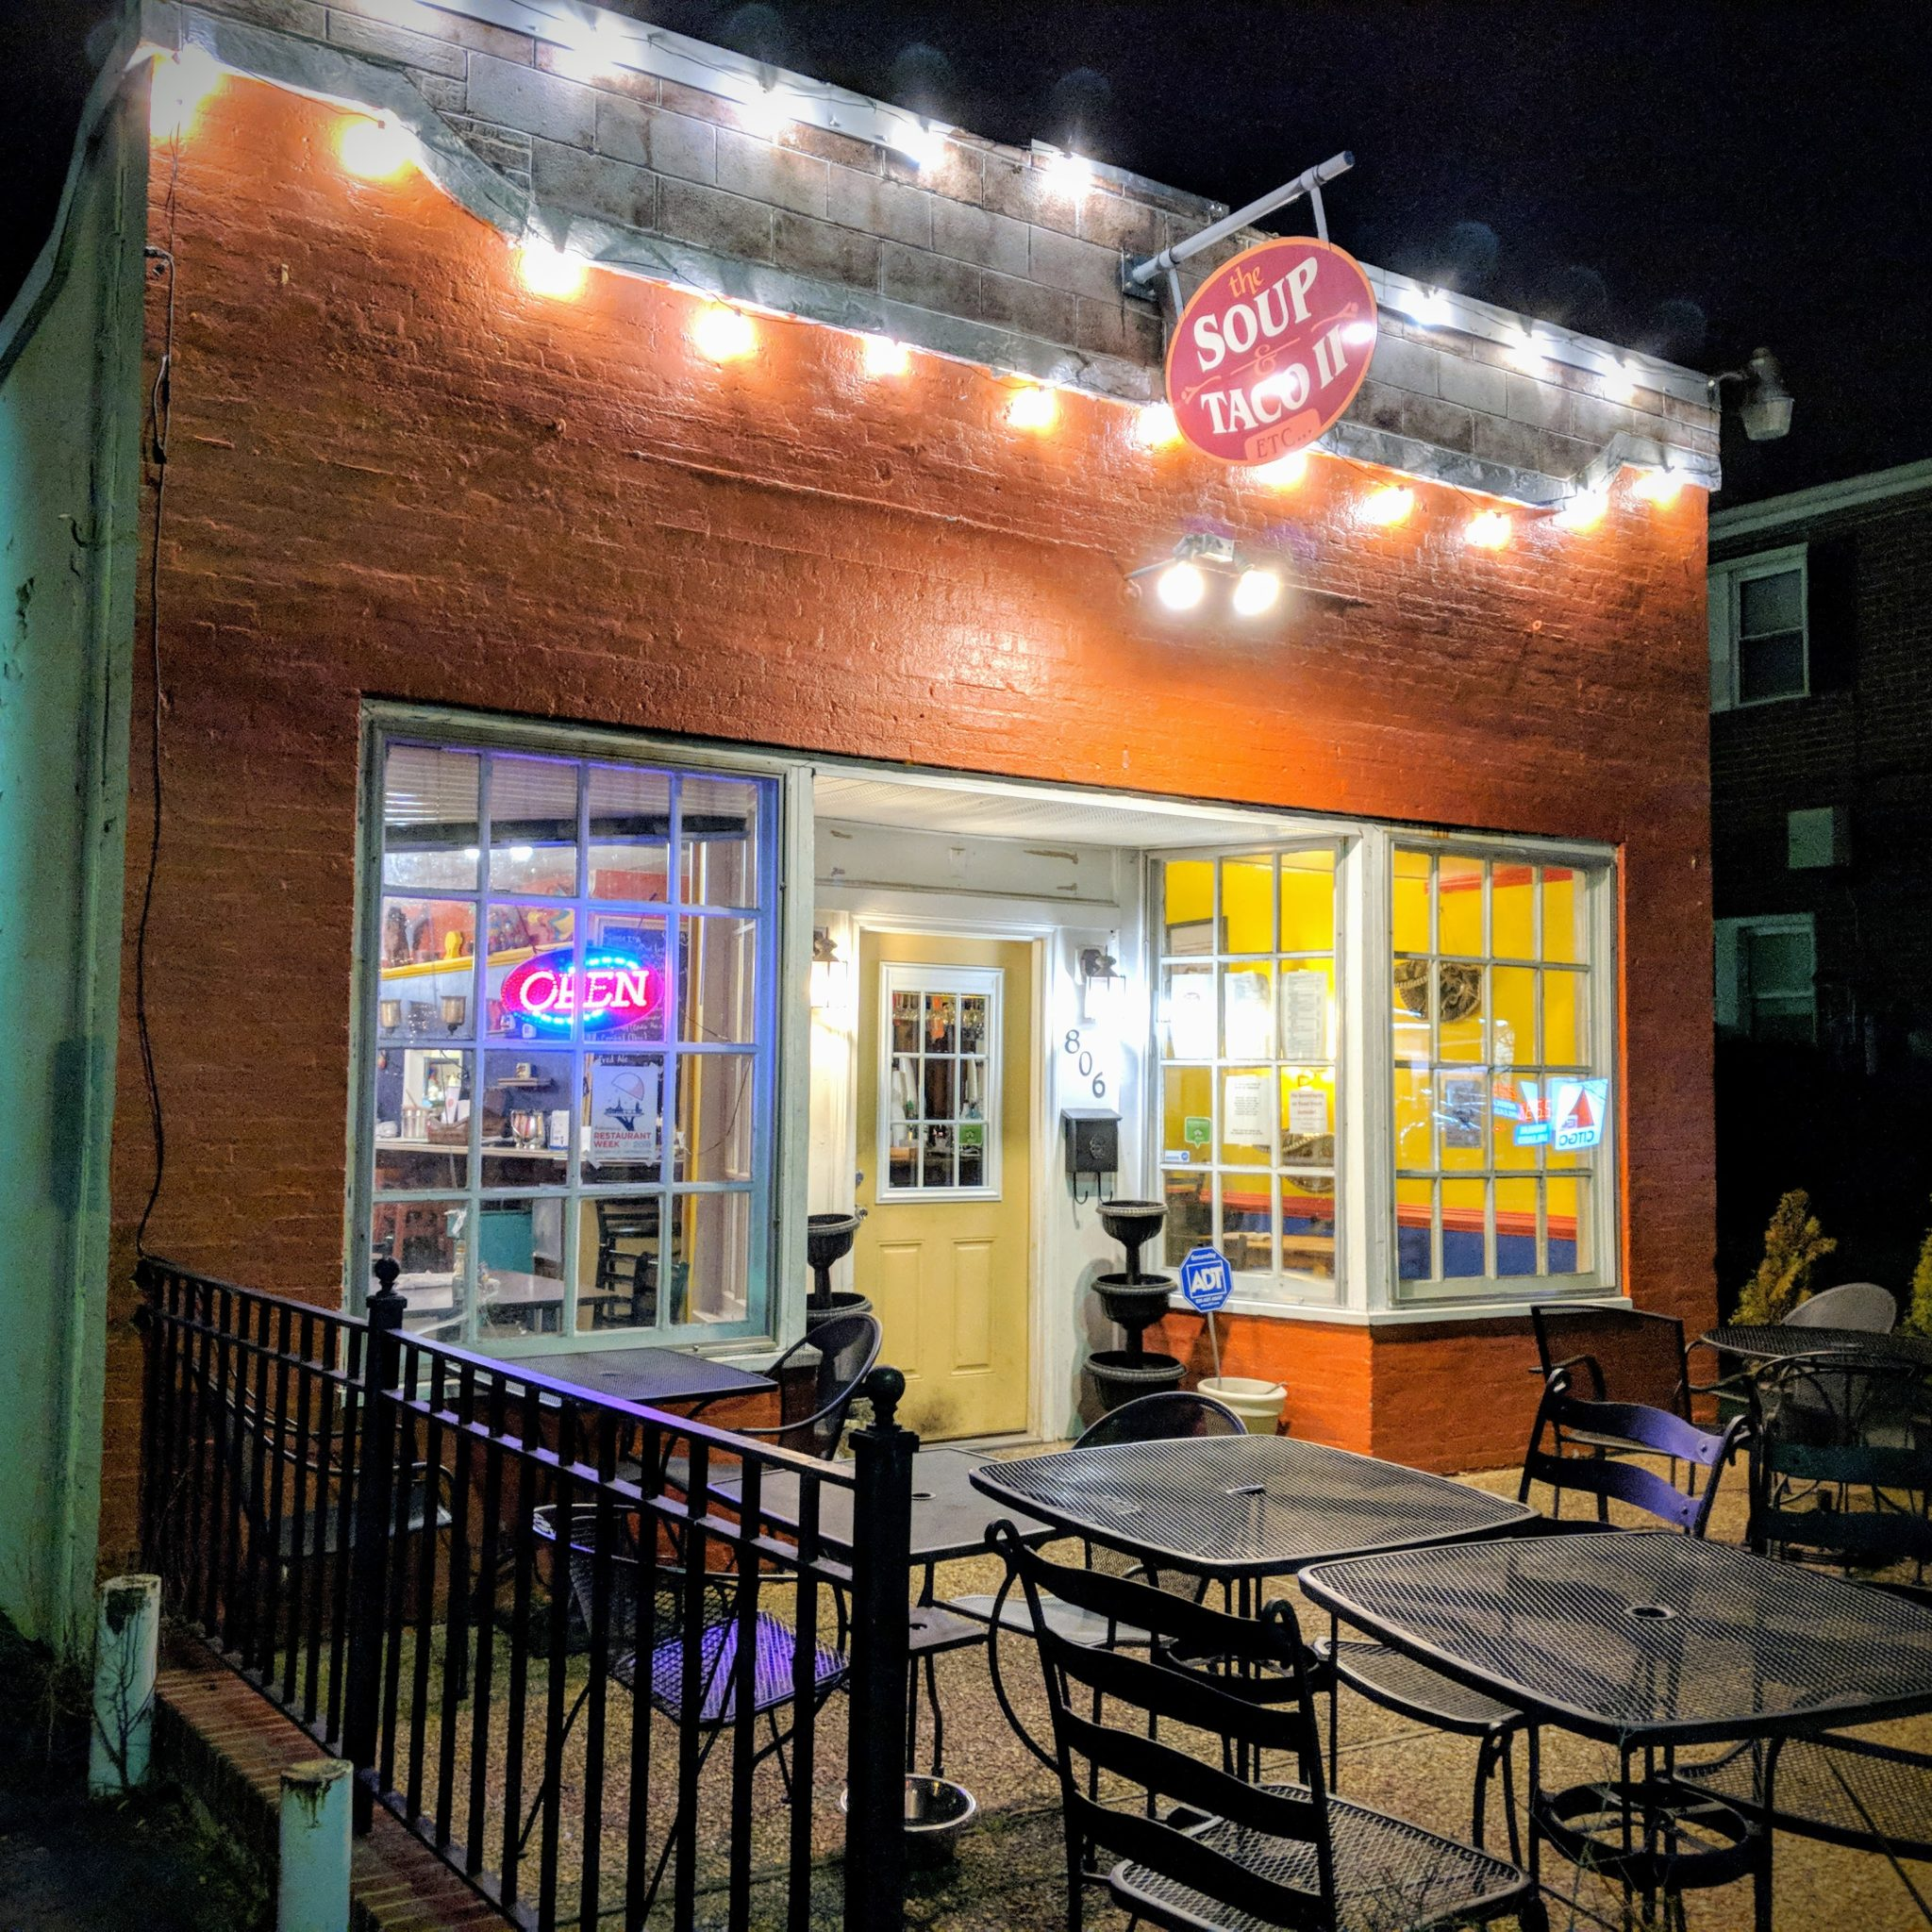 Fredericksburg Restaurant Week 2018 – Soup and Taco II #fxbgrestaurantweek